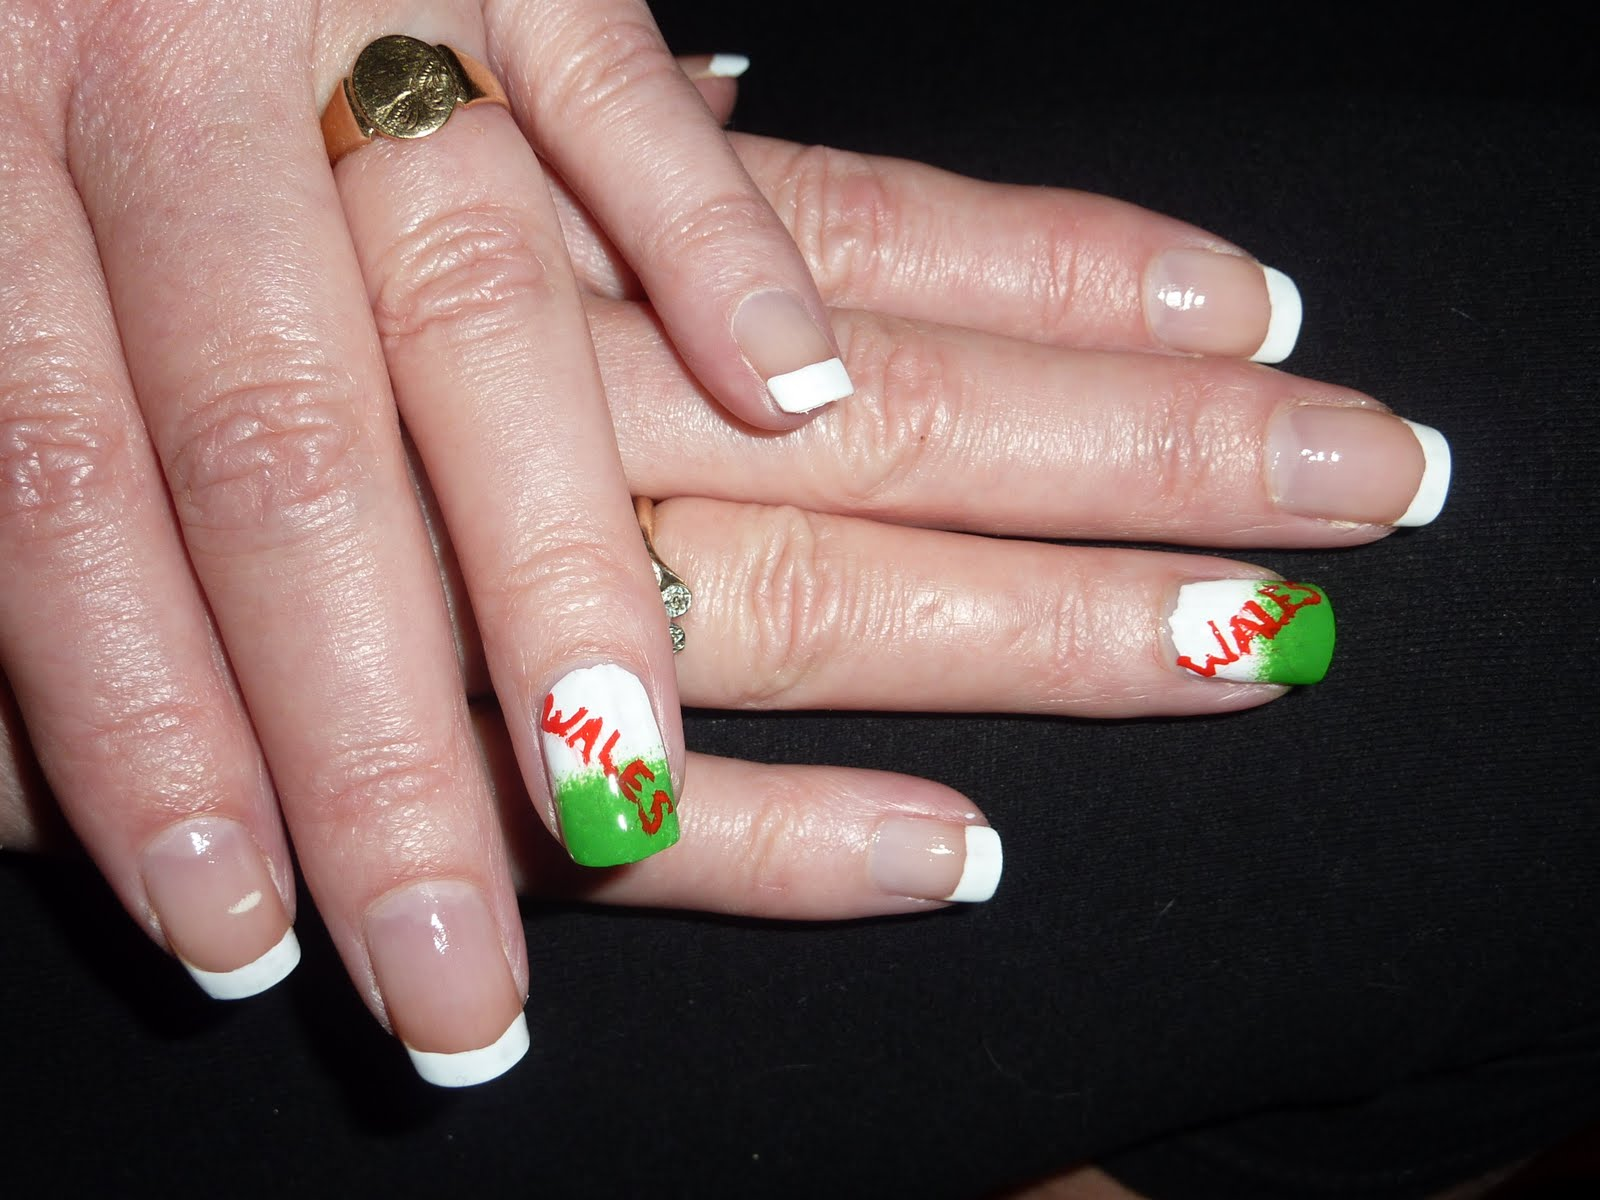 Gel nails in rugby